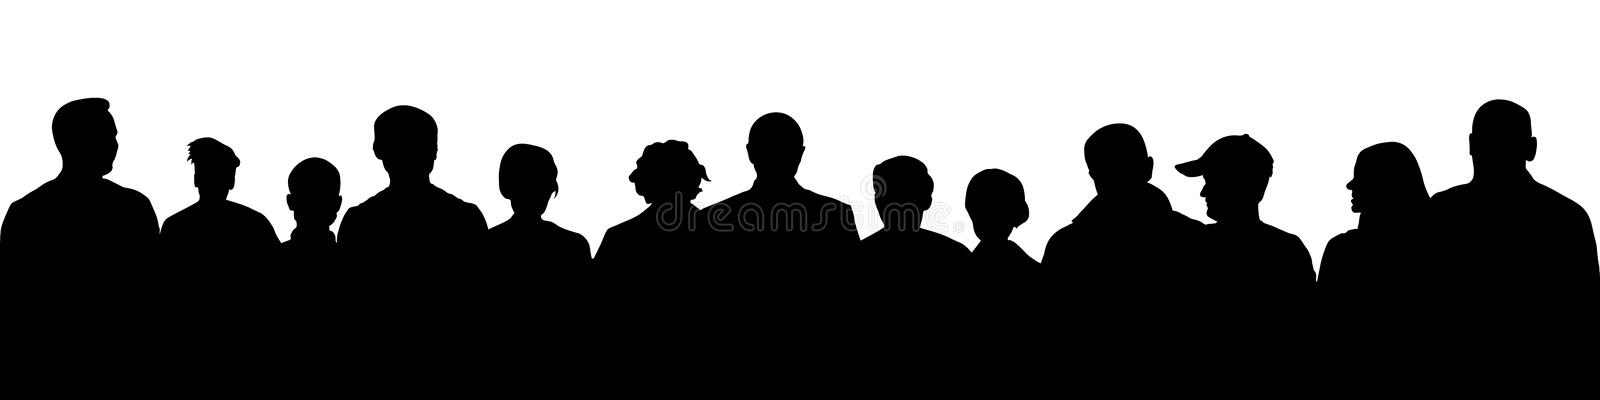 Crowd of people silhouette. Large audience anonymous faces. Meeting demonstrators. royalty free illustration